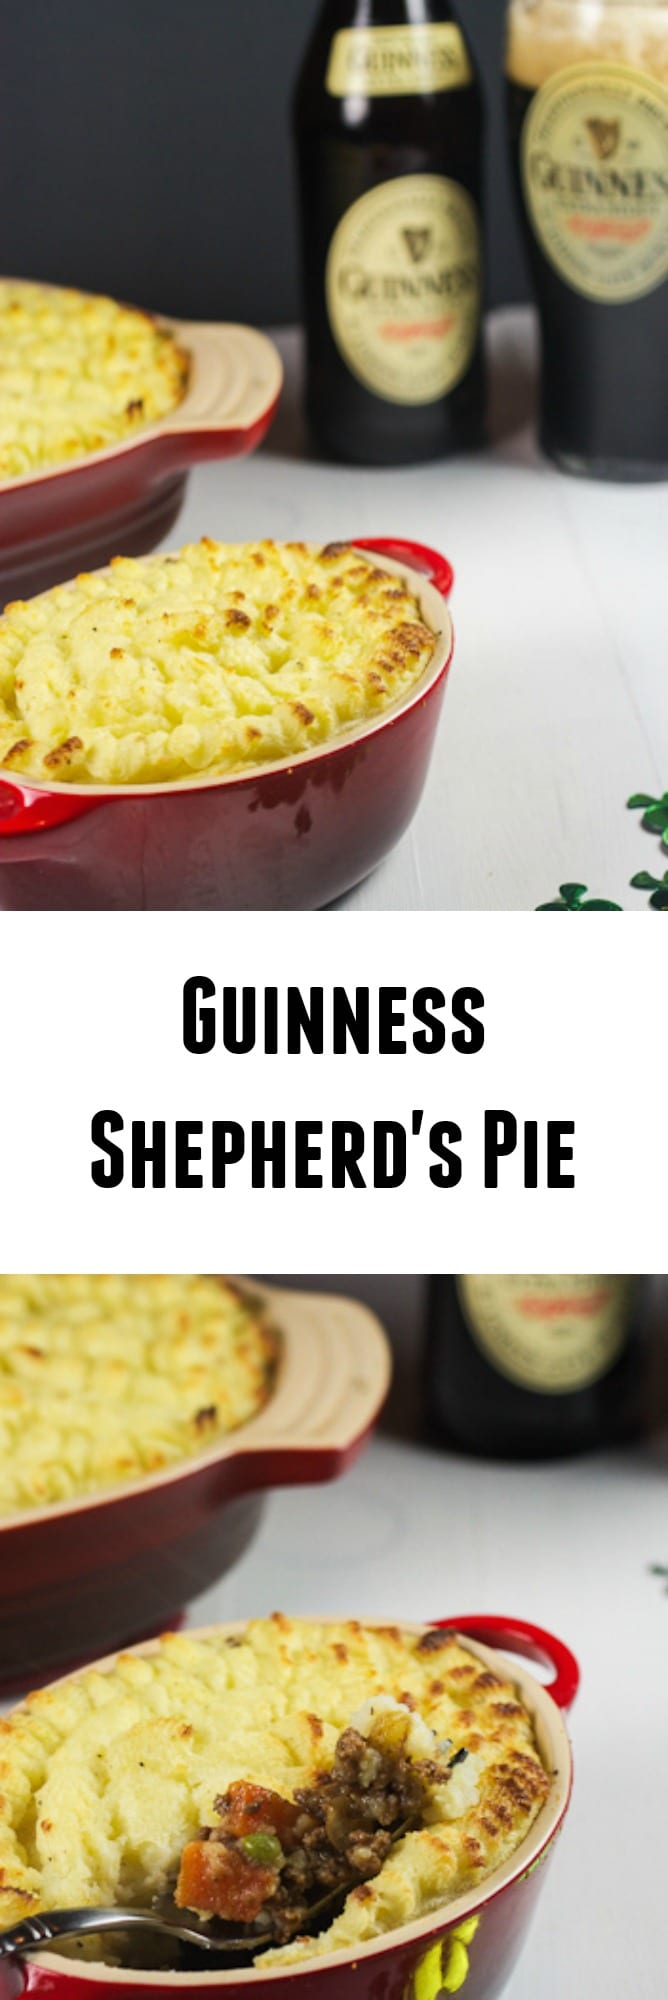 Guinness Shepherd's Pie | girlinthelittleredkitchen.com